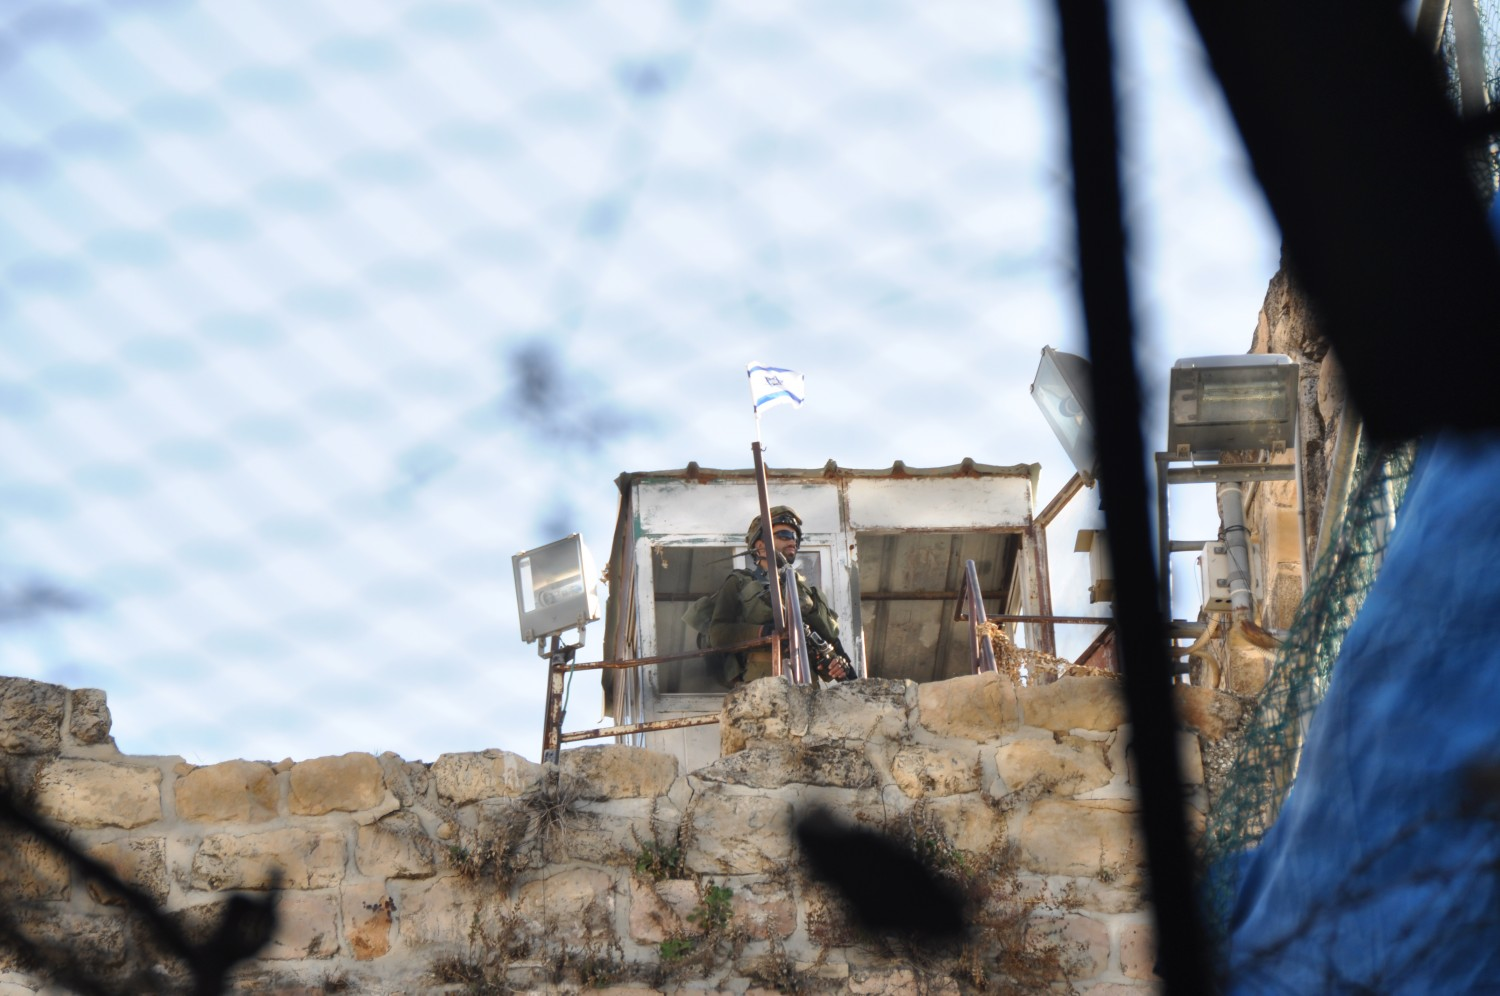 A soldier overlooking Hebron; seen through the nets